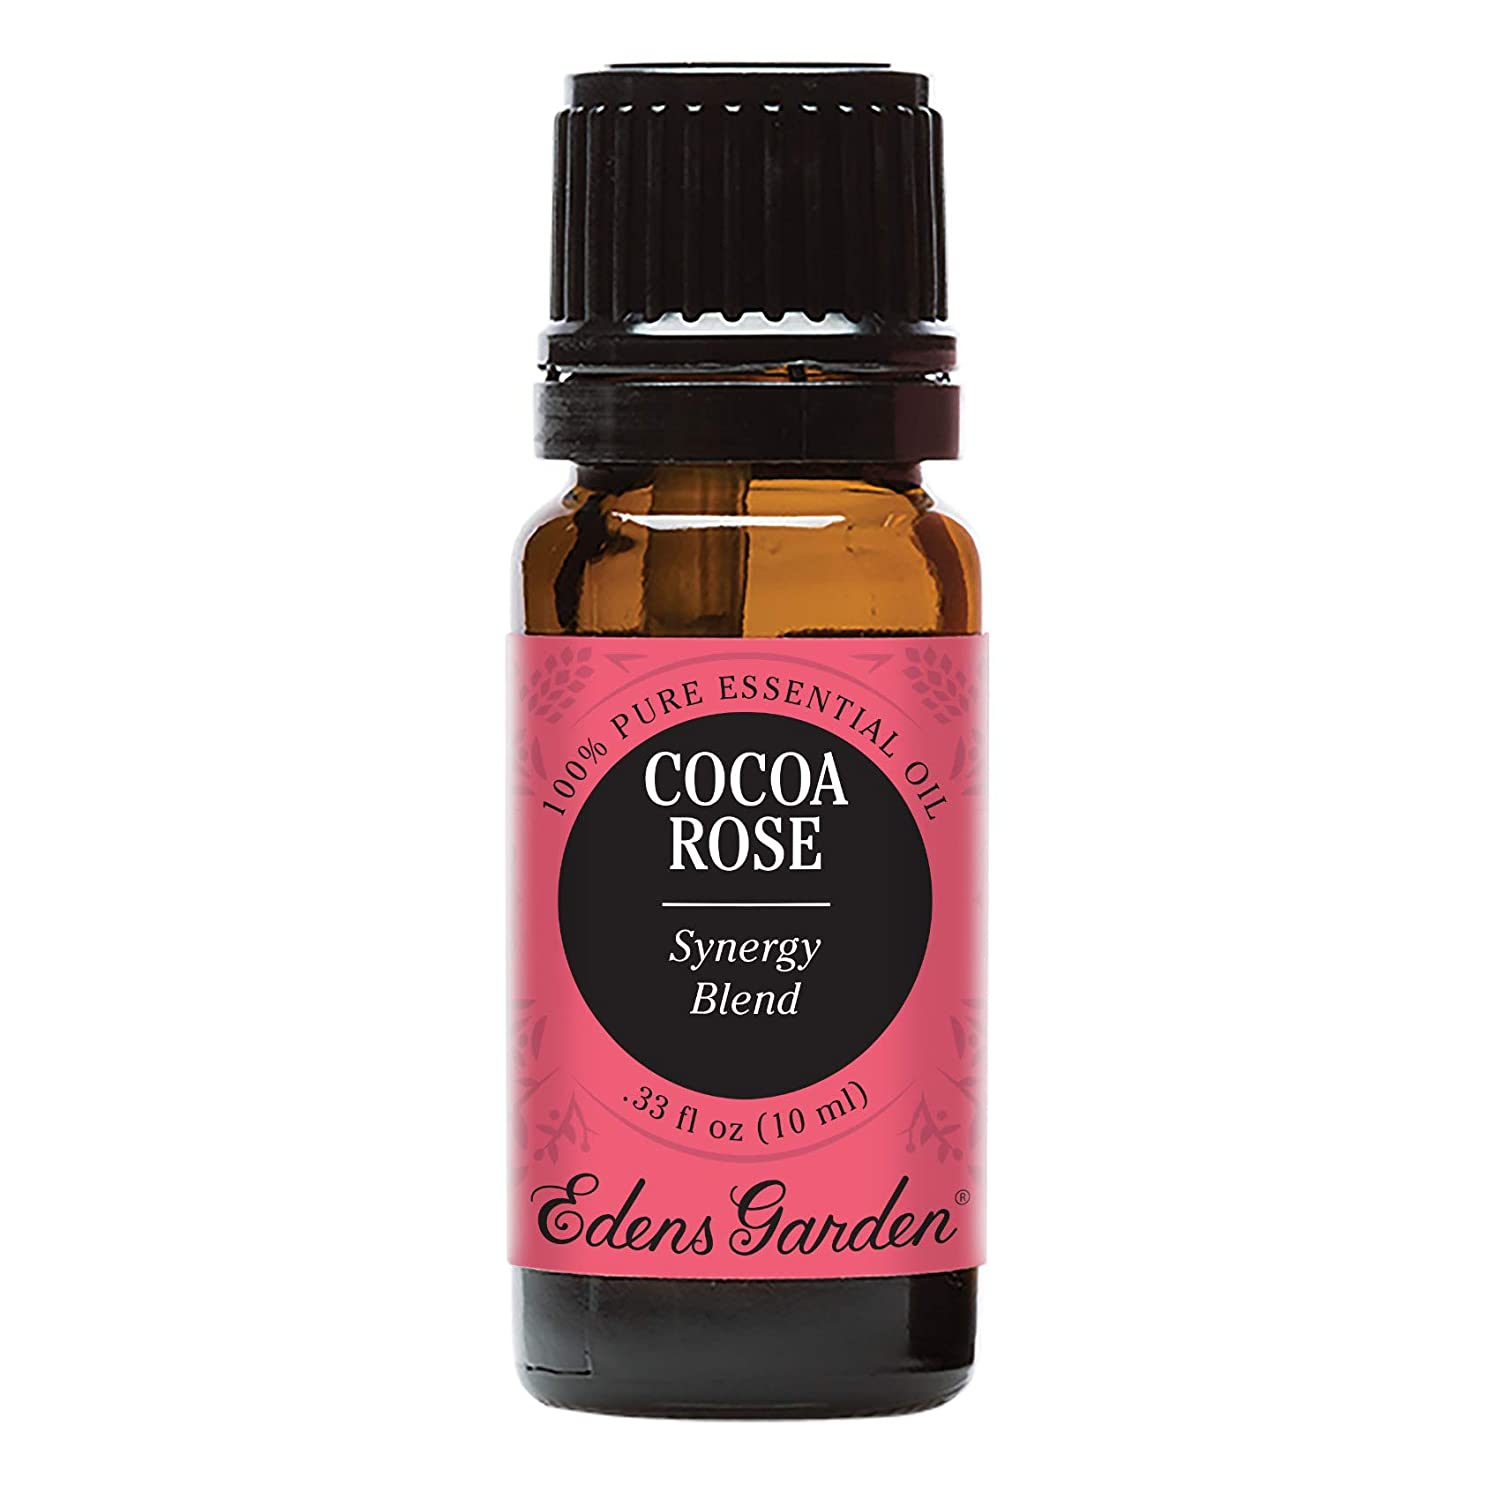 Edens Garden Cocoa Rose Essential Oil Synergy Blend, 100% Pure Therapeutic Grade (Highest Quality Aromatherapy Oils- Aphrodisiac & Stress), 10 ml